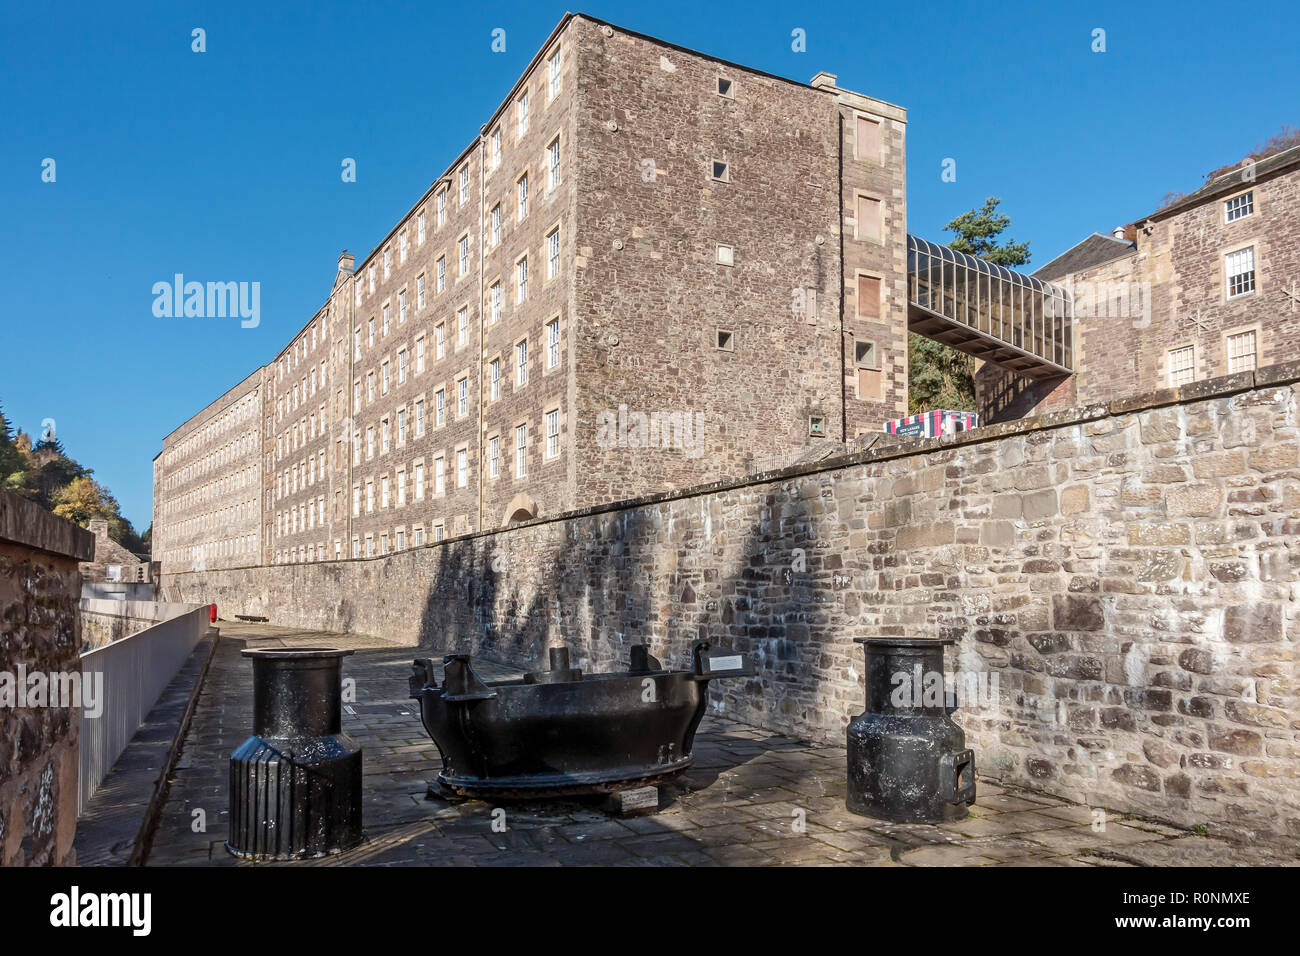 View of Mills 3  & 2 & water turbine remnant at New Lanark Mills World Heritage Site by the River Clyde in Lanark Lanarkshire Scotland UK - Stock Image